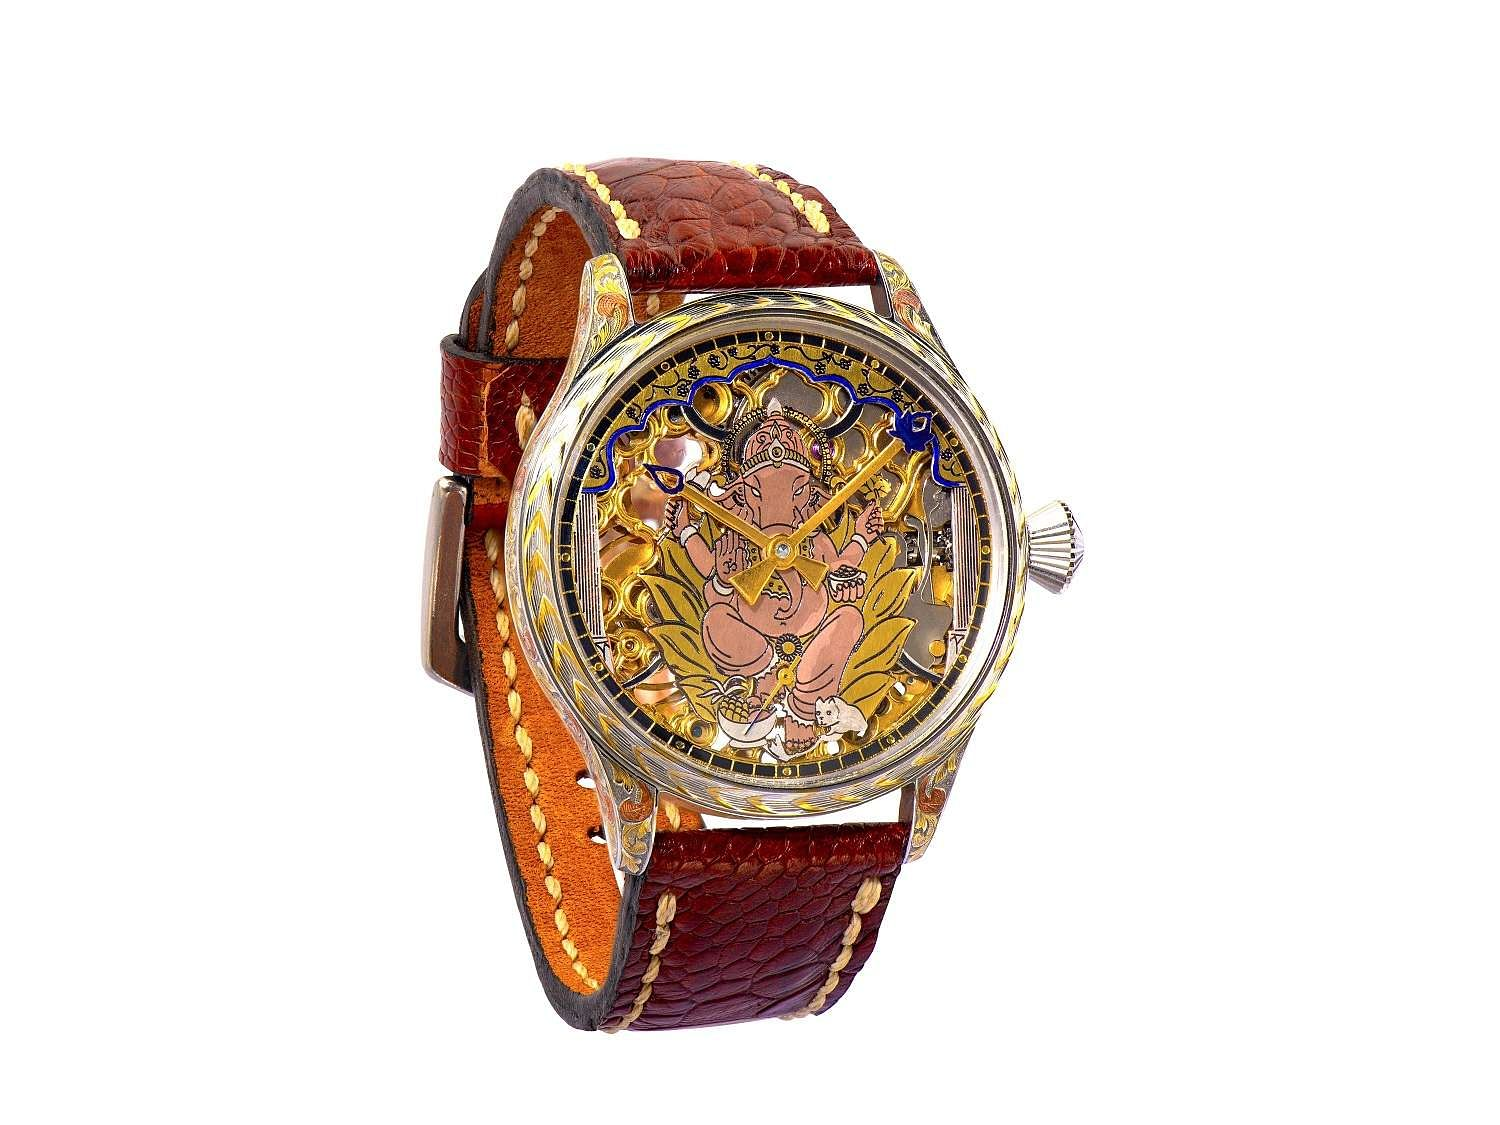 Ganesha Temple watch